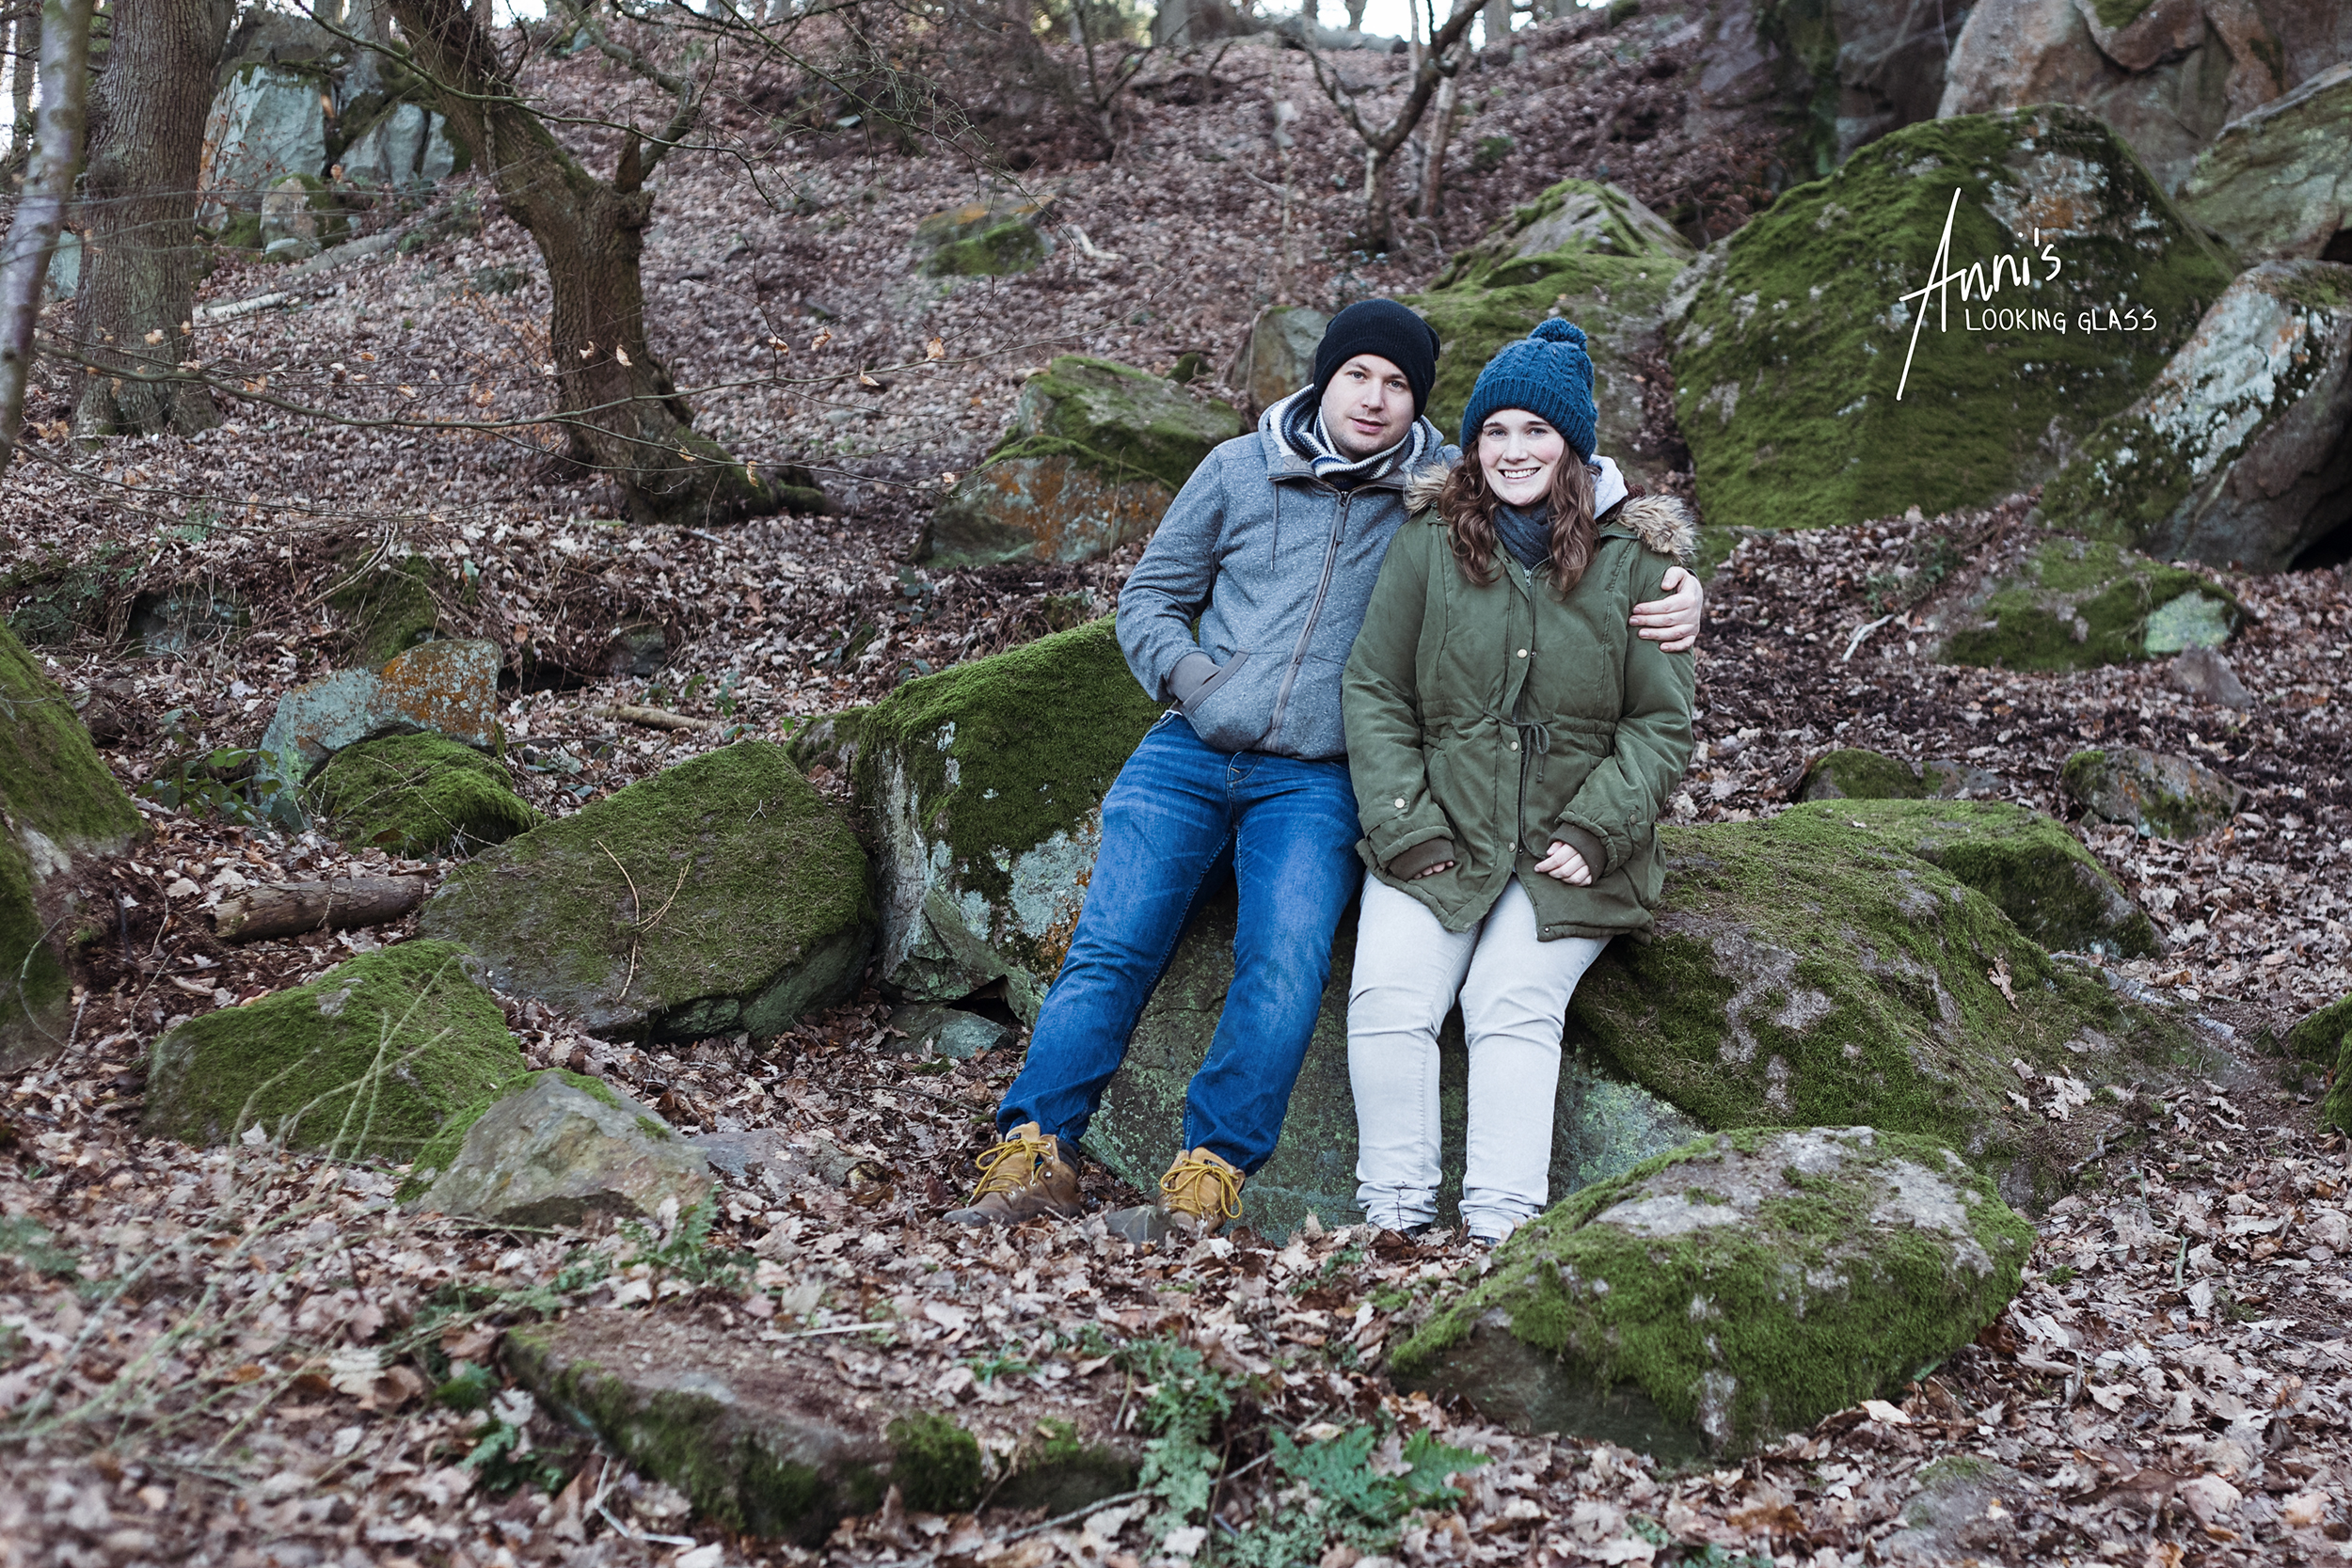 A man and a woman sitting on a rock in the Outwoods near Loughborough, Leicestershire